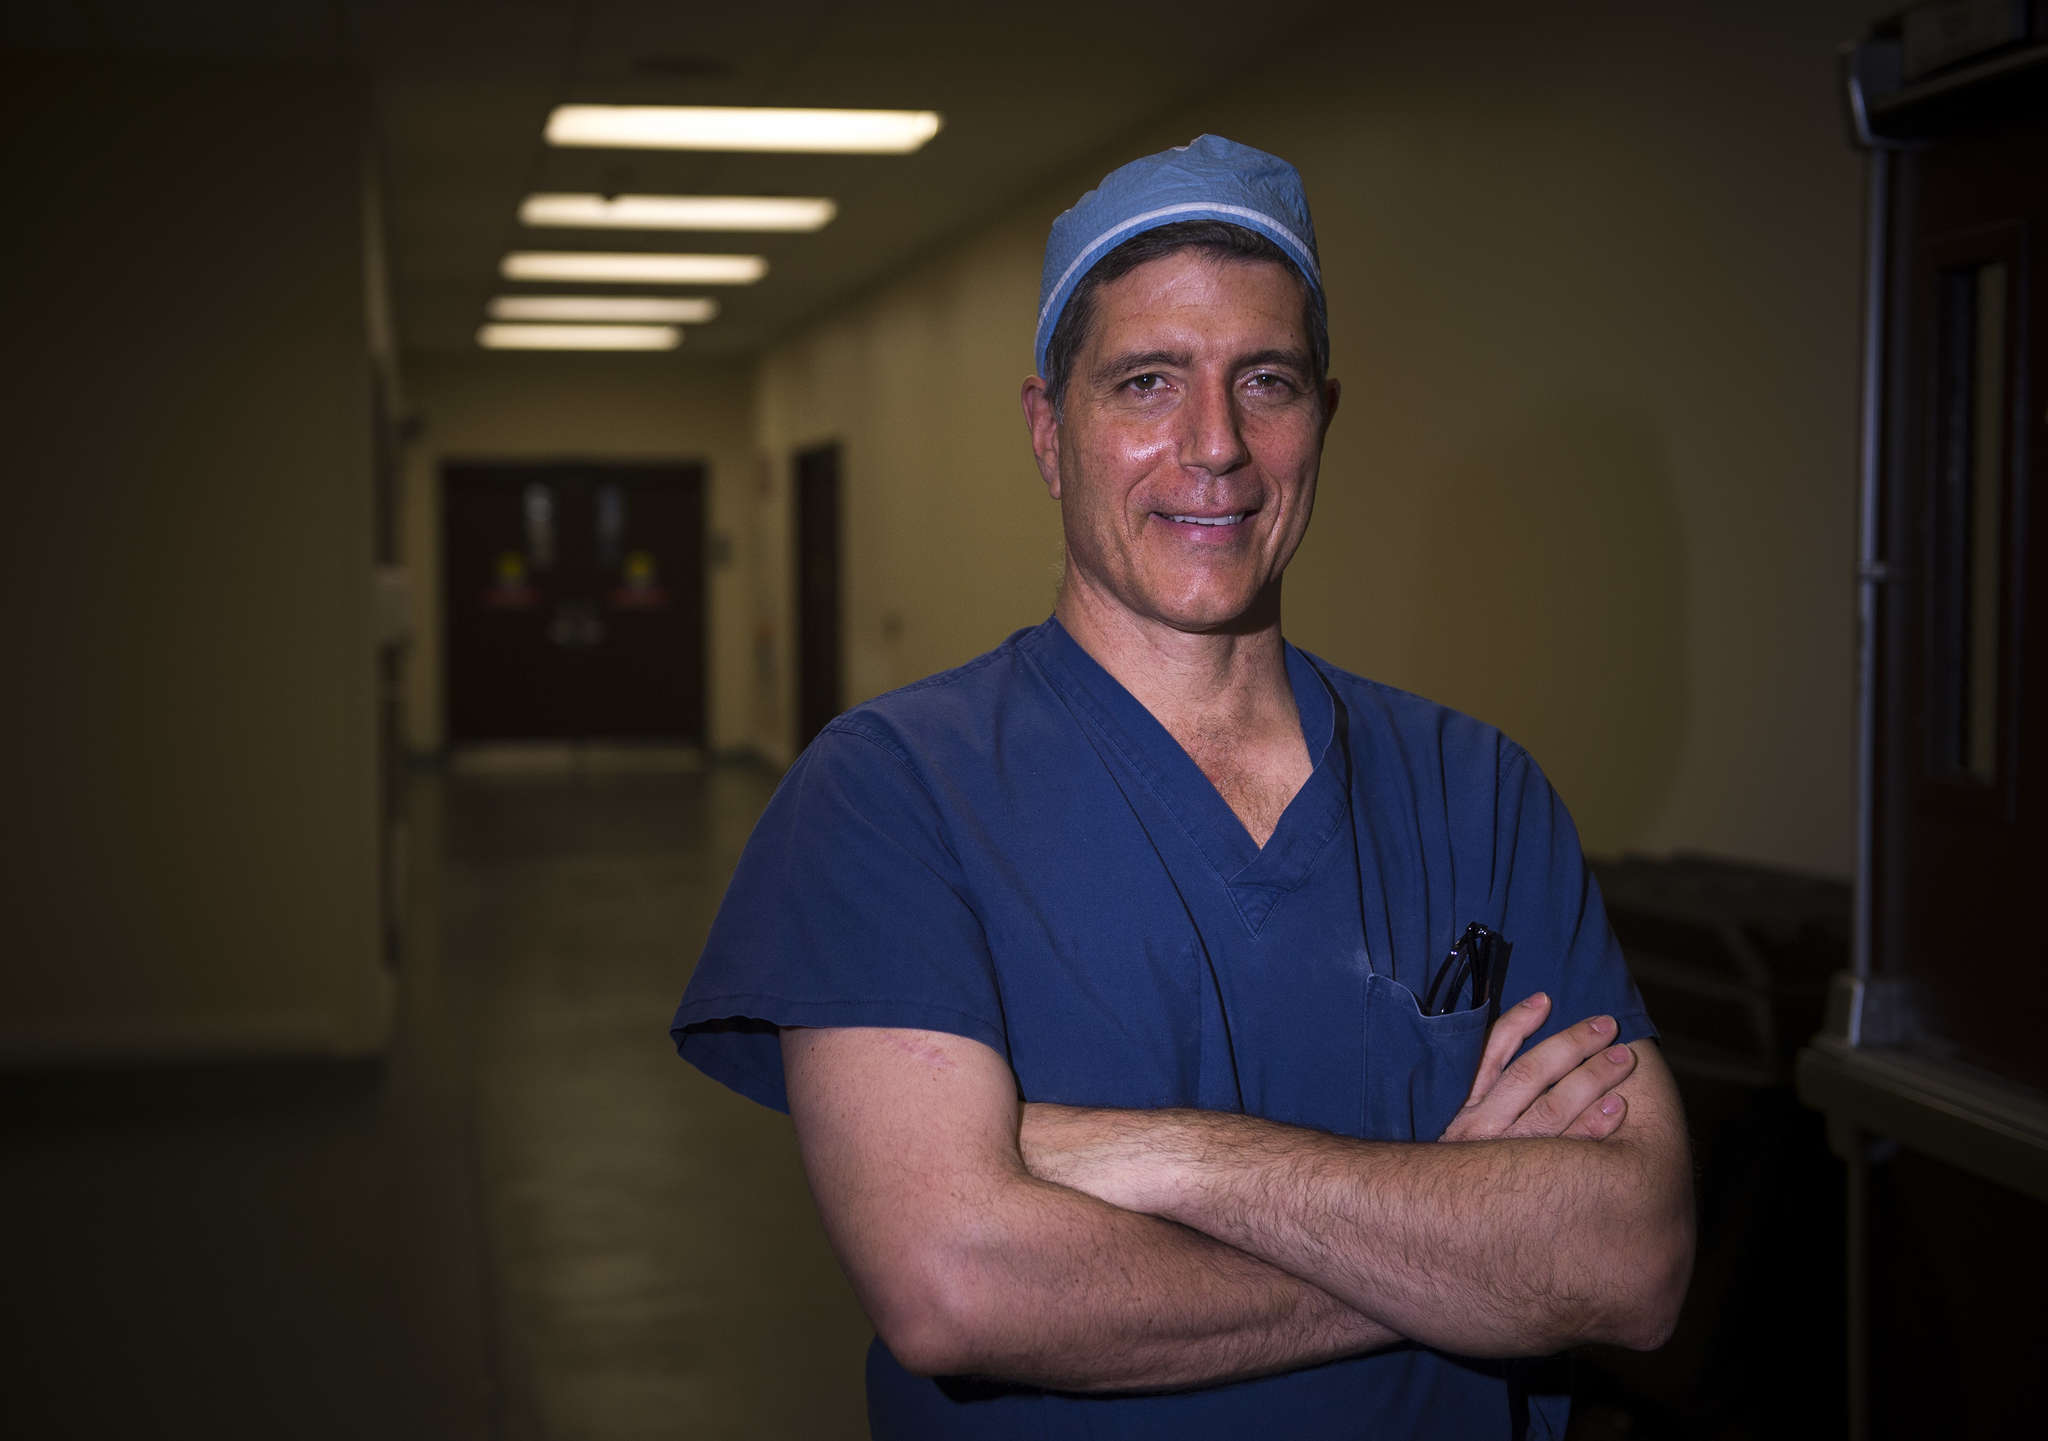 Rothman president Alexander R. Vaccaro likes surgery because he can focus purely on the well-being of the patient.